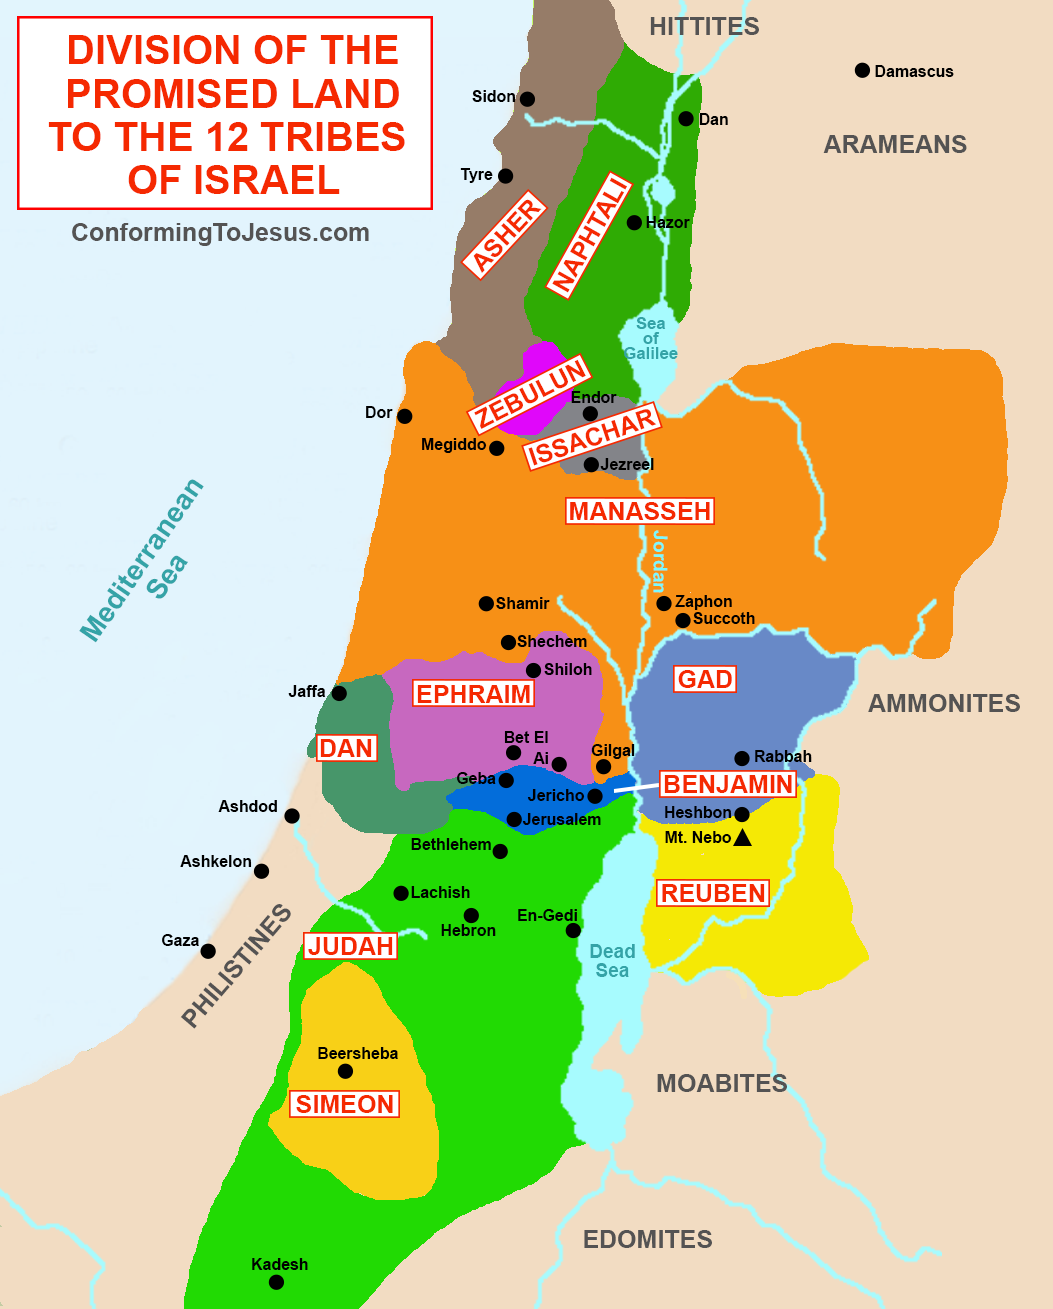 Division of the Promised Land to the 12 Tribes of Israel Map